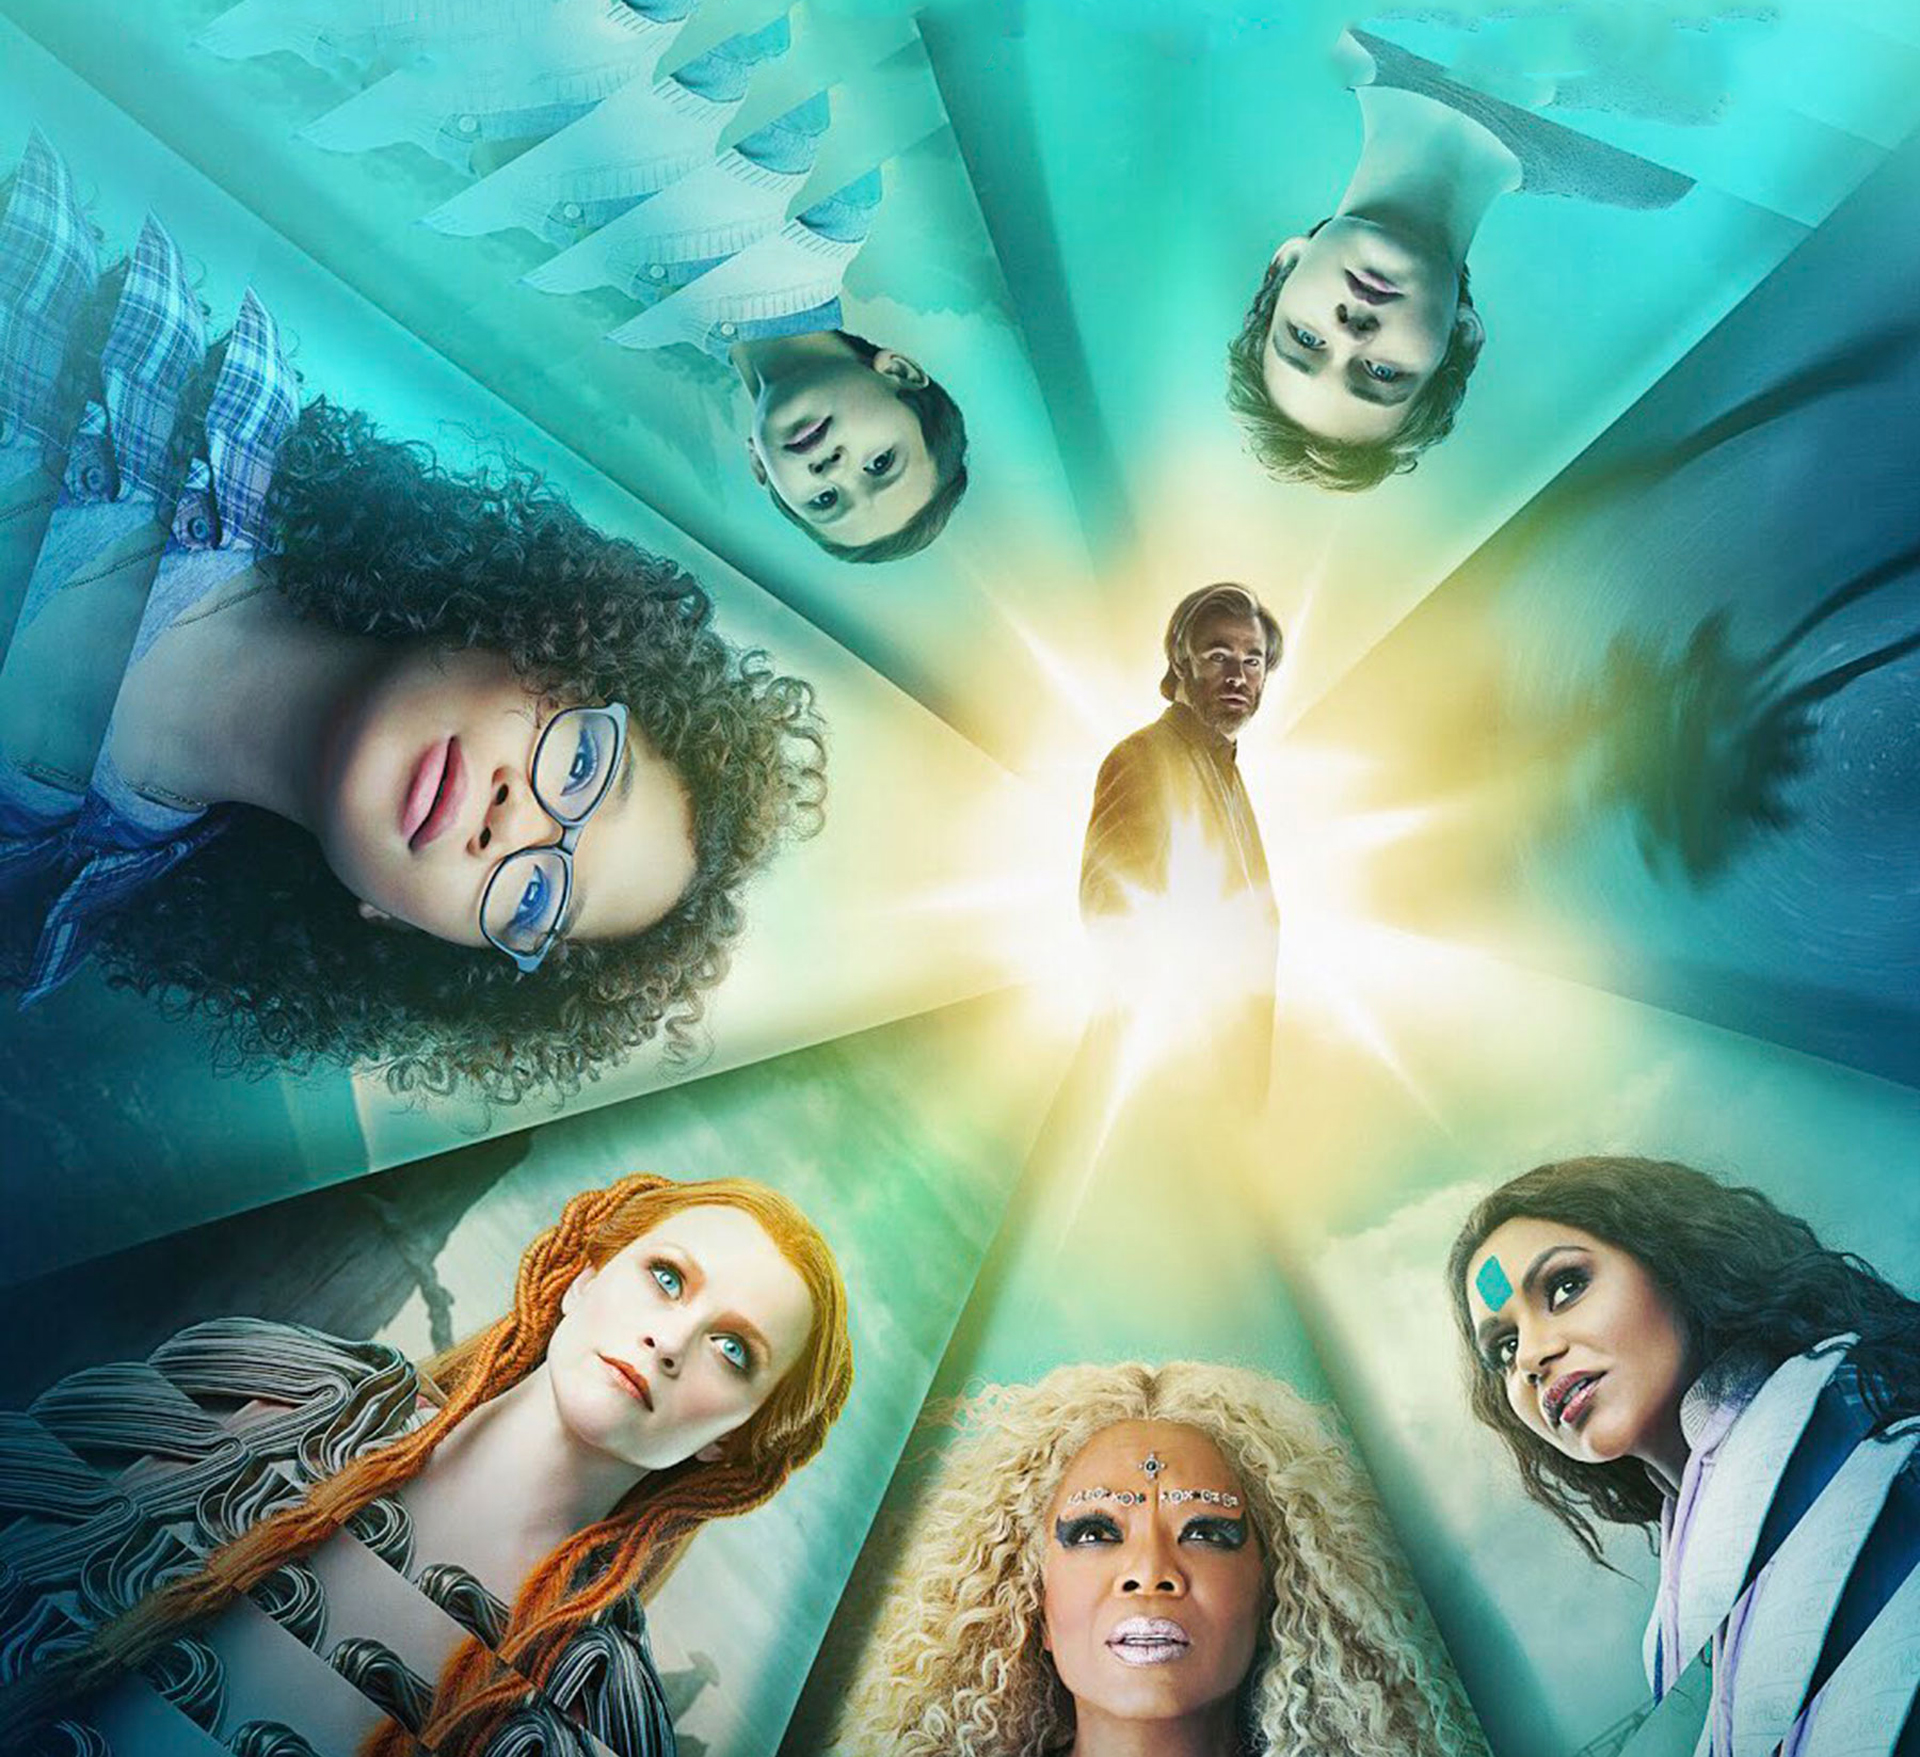 a wrinkle in time 2018 movie pv The 25 Most Anticipated Movies of 2018